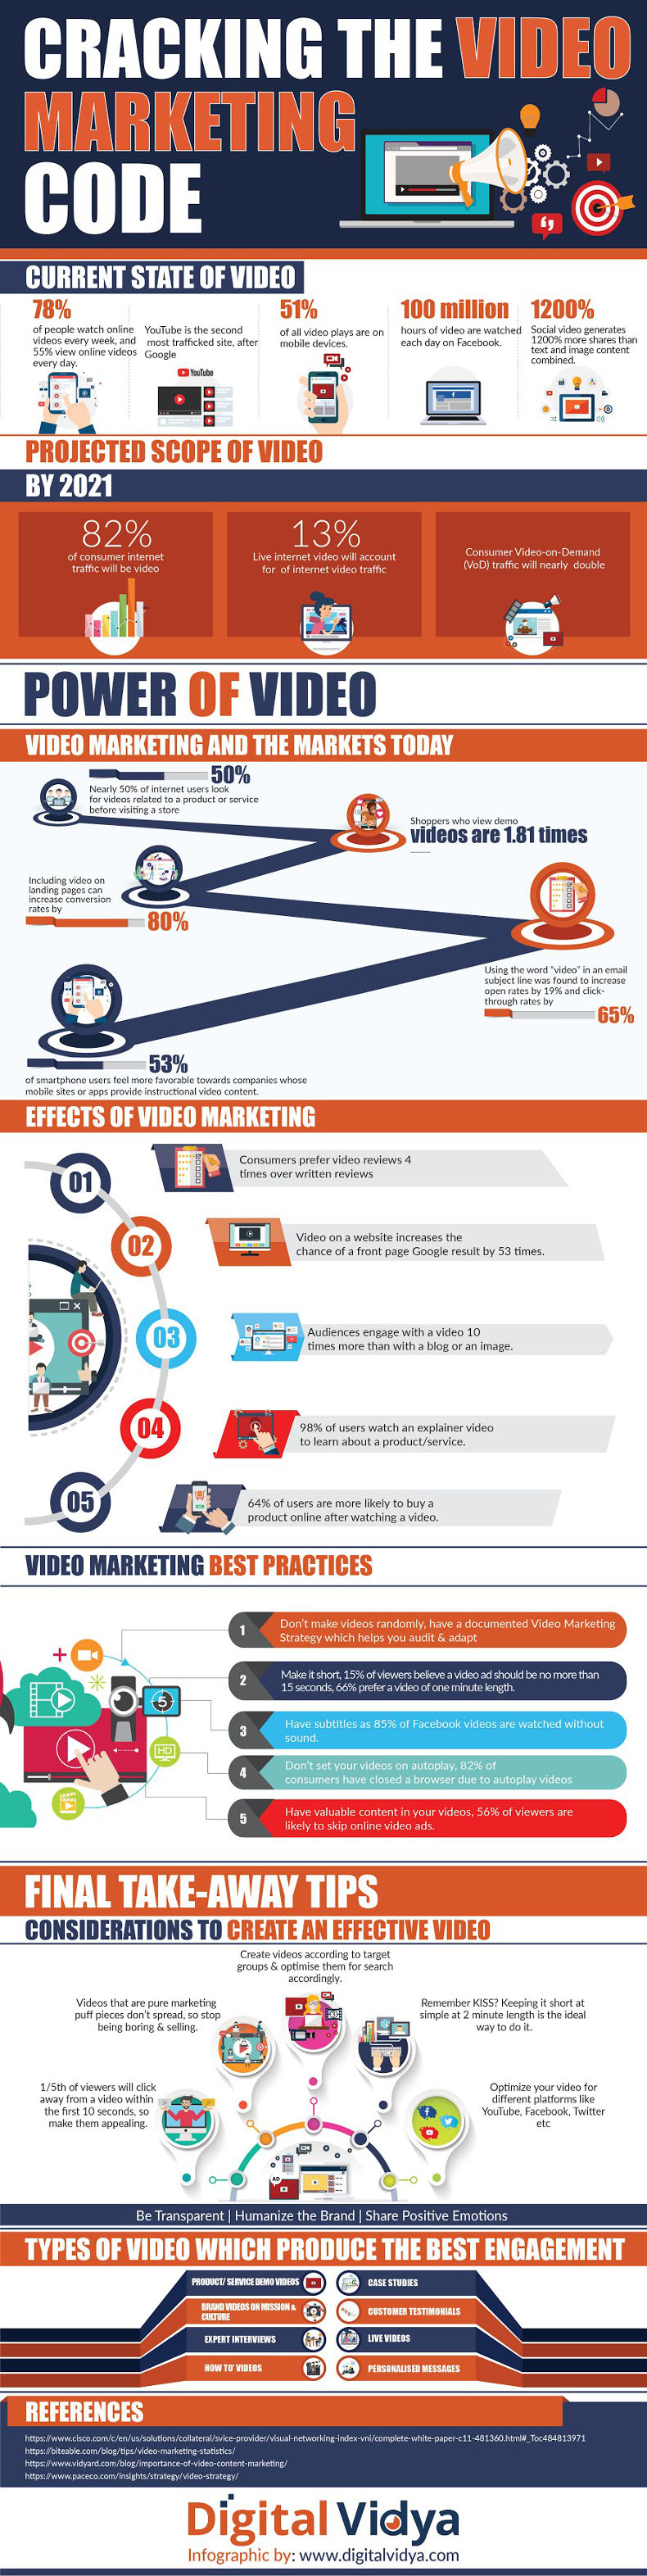 Infographic: 23 Video Marketing Statistics